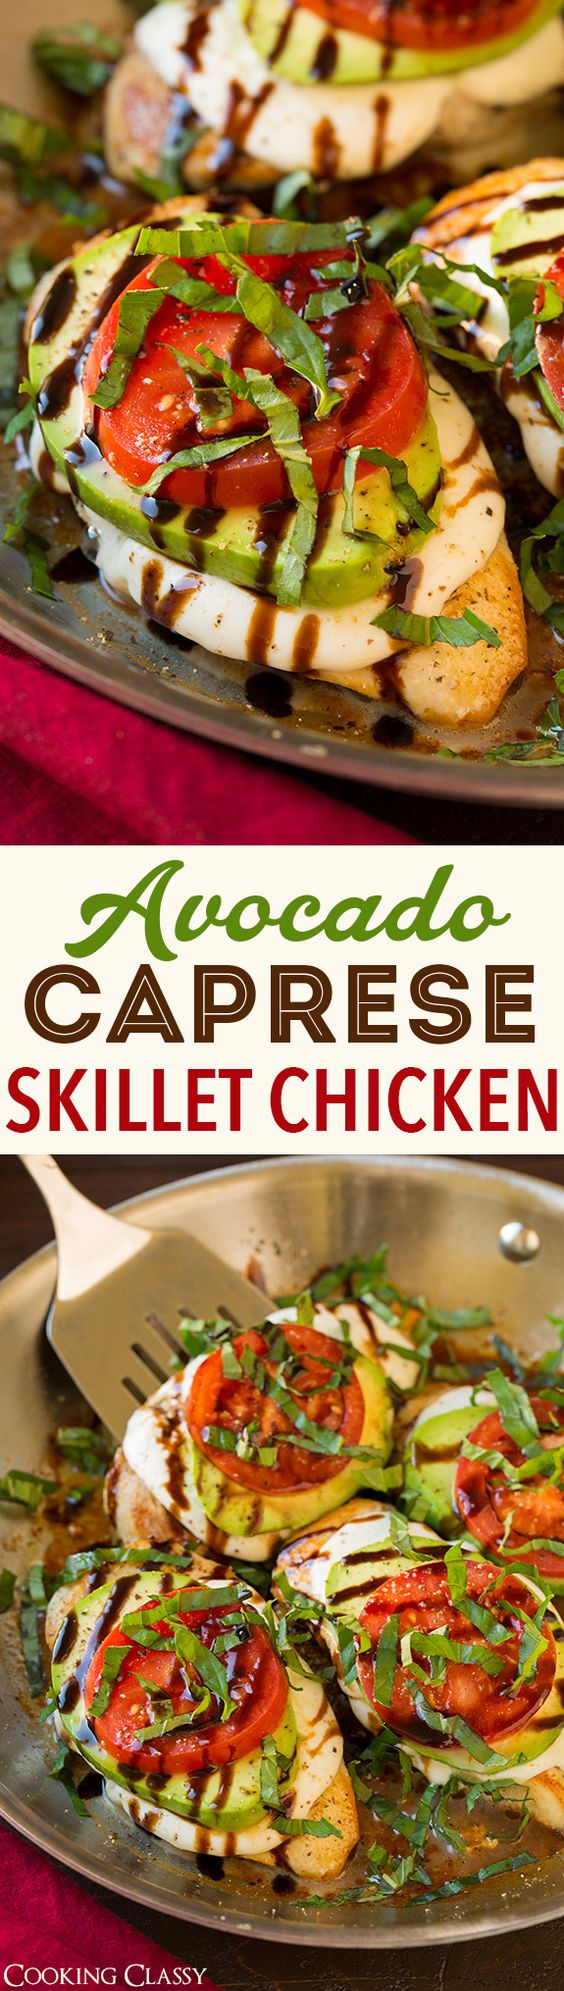 Chicken Recipes - Avocado Caprese Skillet Chicken Recipe via Cooking Classy - This is one of our all time chicken dinner favorites #chickenrecipes #popularchickenrecipes #chicken #easychickenrecipes #chickenbreastrecipes #easylunches #easydinners #simplefamilymeals #simplefamilyrecipes #simplerecipes